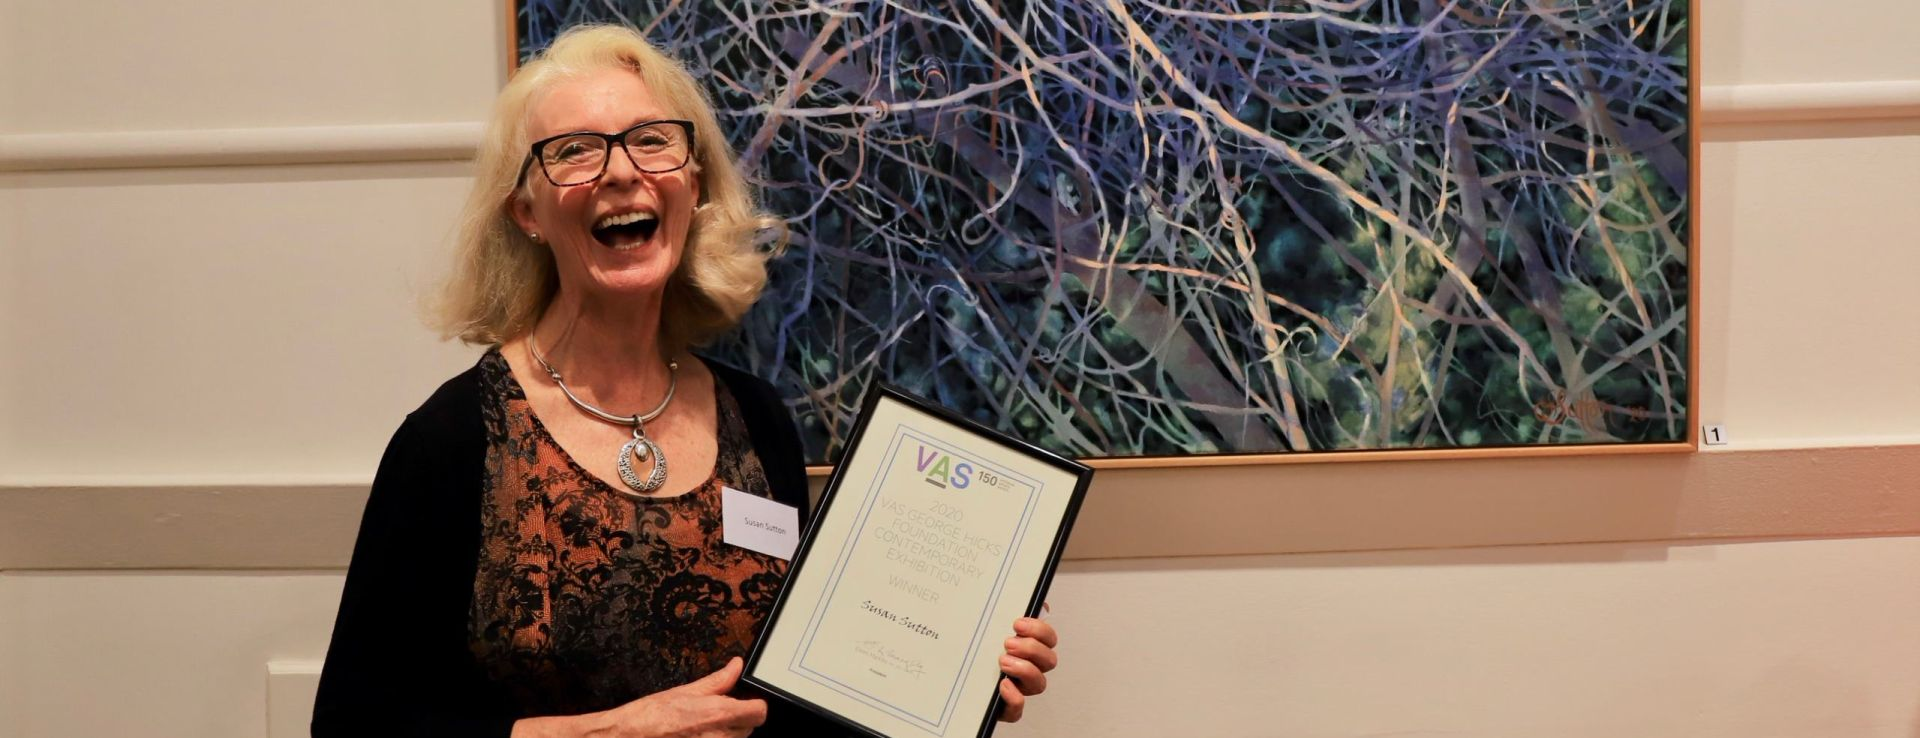 150th Anniversary Event Image prize winner with painting